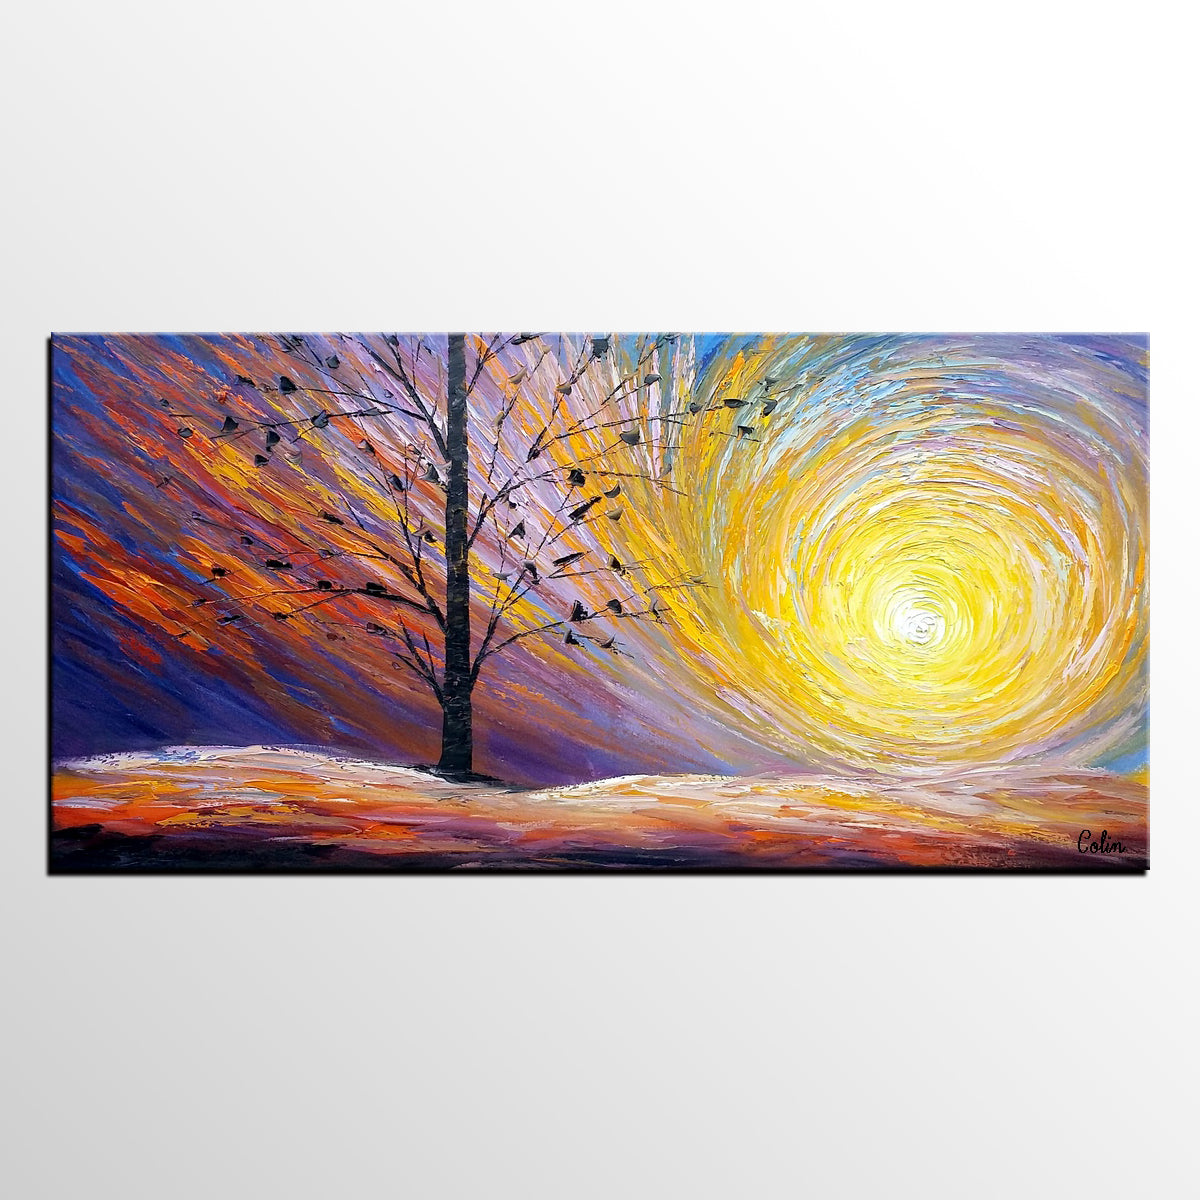 Original Oil Painting, Modern Painting, Landscape Art, Painting for Sale - artworkcanvas